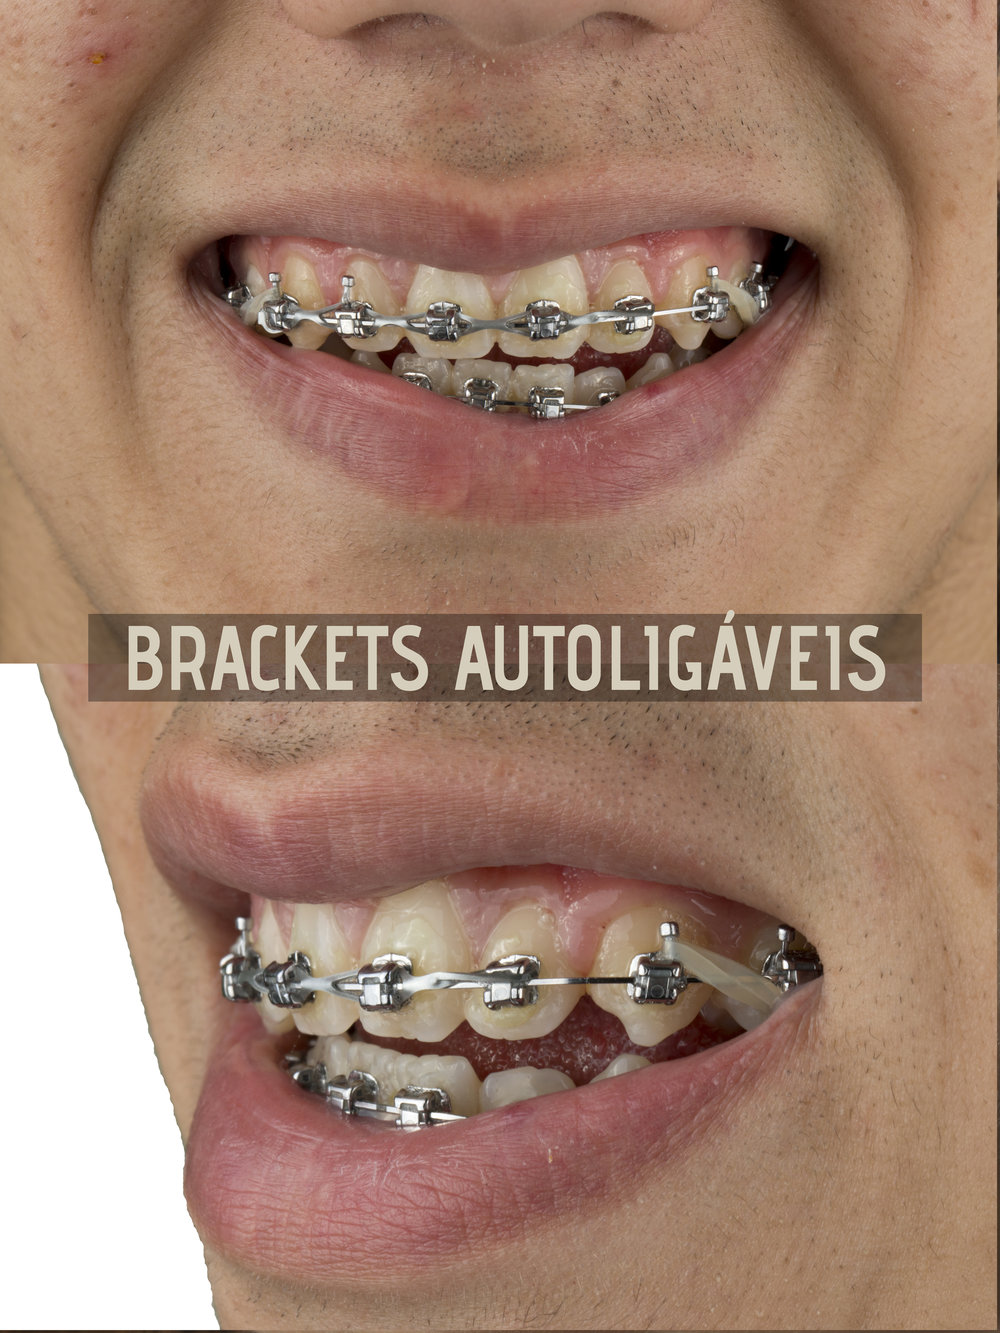 brackets autoligaveis final.jpg